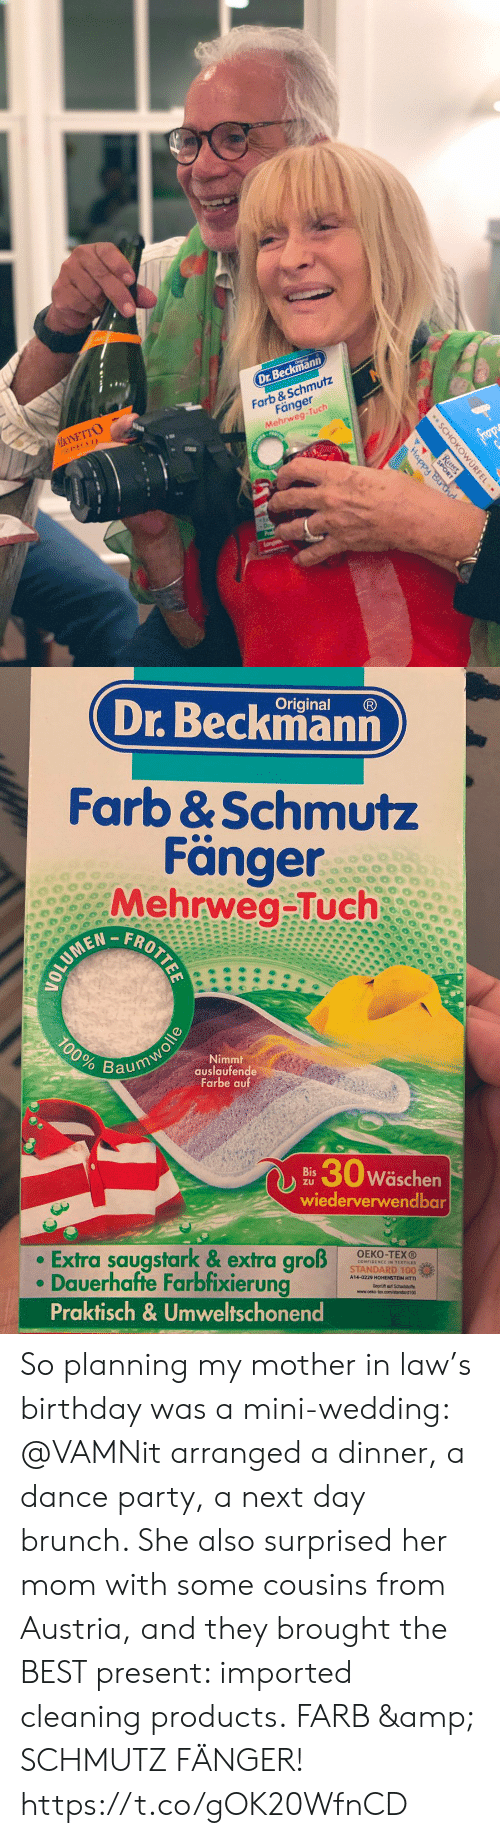 brunch: Dr.Beckmann  MONETTO  PROSECCO  Farb &Schmutz  Fänger  Mehrweg-Tuch  frop  Happy Bir d  Langan  SCHOKOWURFEL  Ritter  SPORT  .   Original  Dr.Beckmann  Farb &Schmutz  Fänger  Mehrweg-Tuch  FROTTEE  100%  Nimmt  auslaufende  Farbe auf  Baumwolle  30w  Wäschen  Bis  ZU  wiederverwendbar  Extra saugstark & extra groß  Dauerhafte Farbfixierung  Praktisch& Umweltschonend  OEKO-TEXO  STANDARD 100%  A14-0229 HOHENSTEIN HTTI So planning my mother in law's birthday was a mini-wedding: @VAMNit arranged a dinner, a dance party, a next day brunch. She also surprised her mom with some cousins from Austria, and they brought the BEST present:  imported cleaning products. FARB & SCHMUTZ FÄNGER! https://t.co/gOK20WfnCD